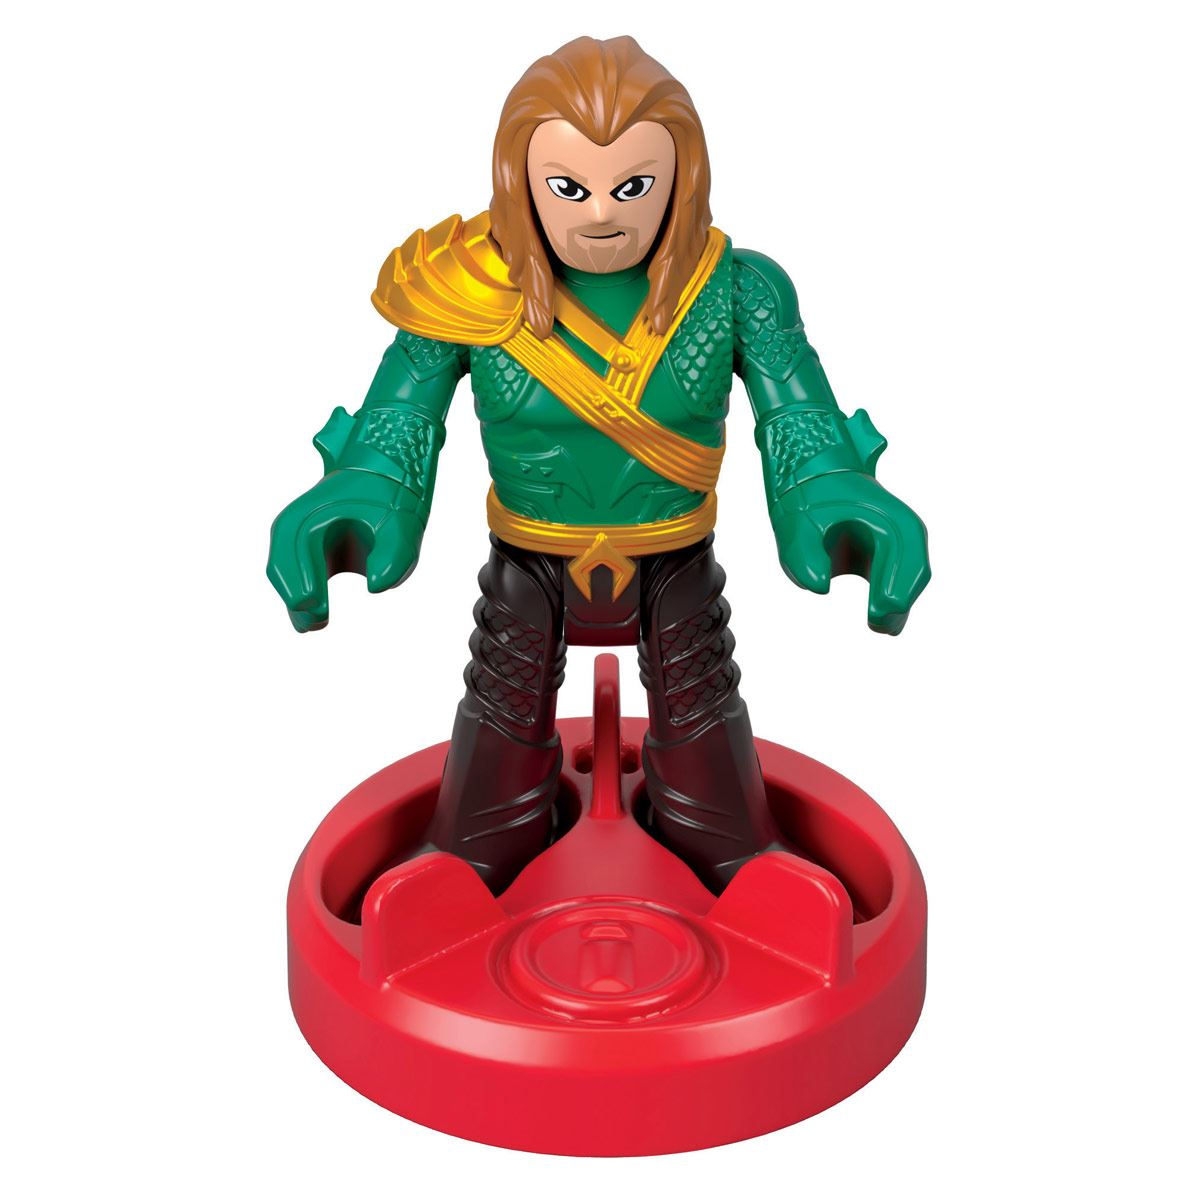 Fisher Price Imaginext Aquaman Reino de Atlantis